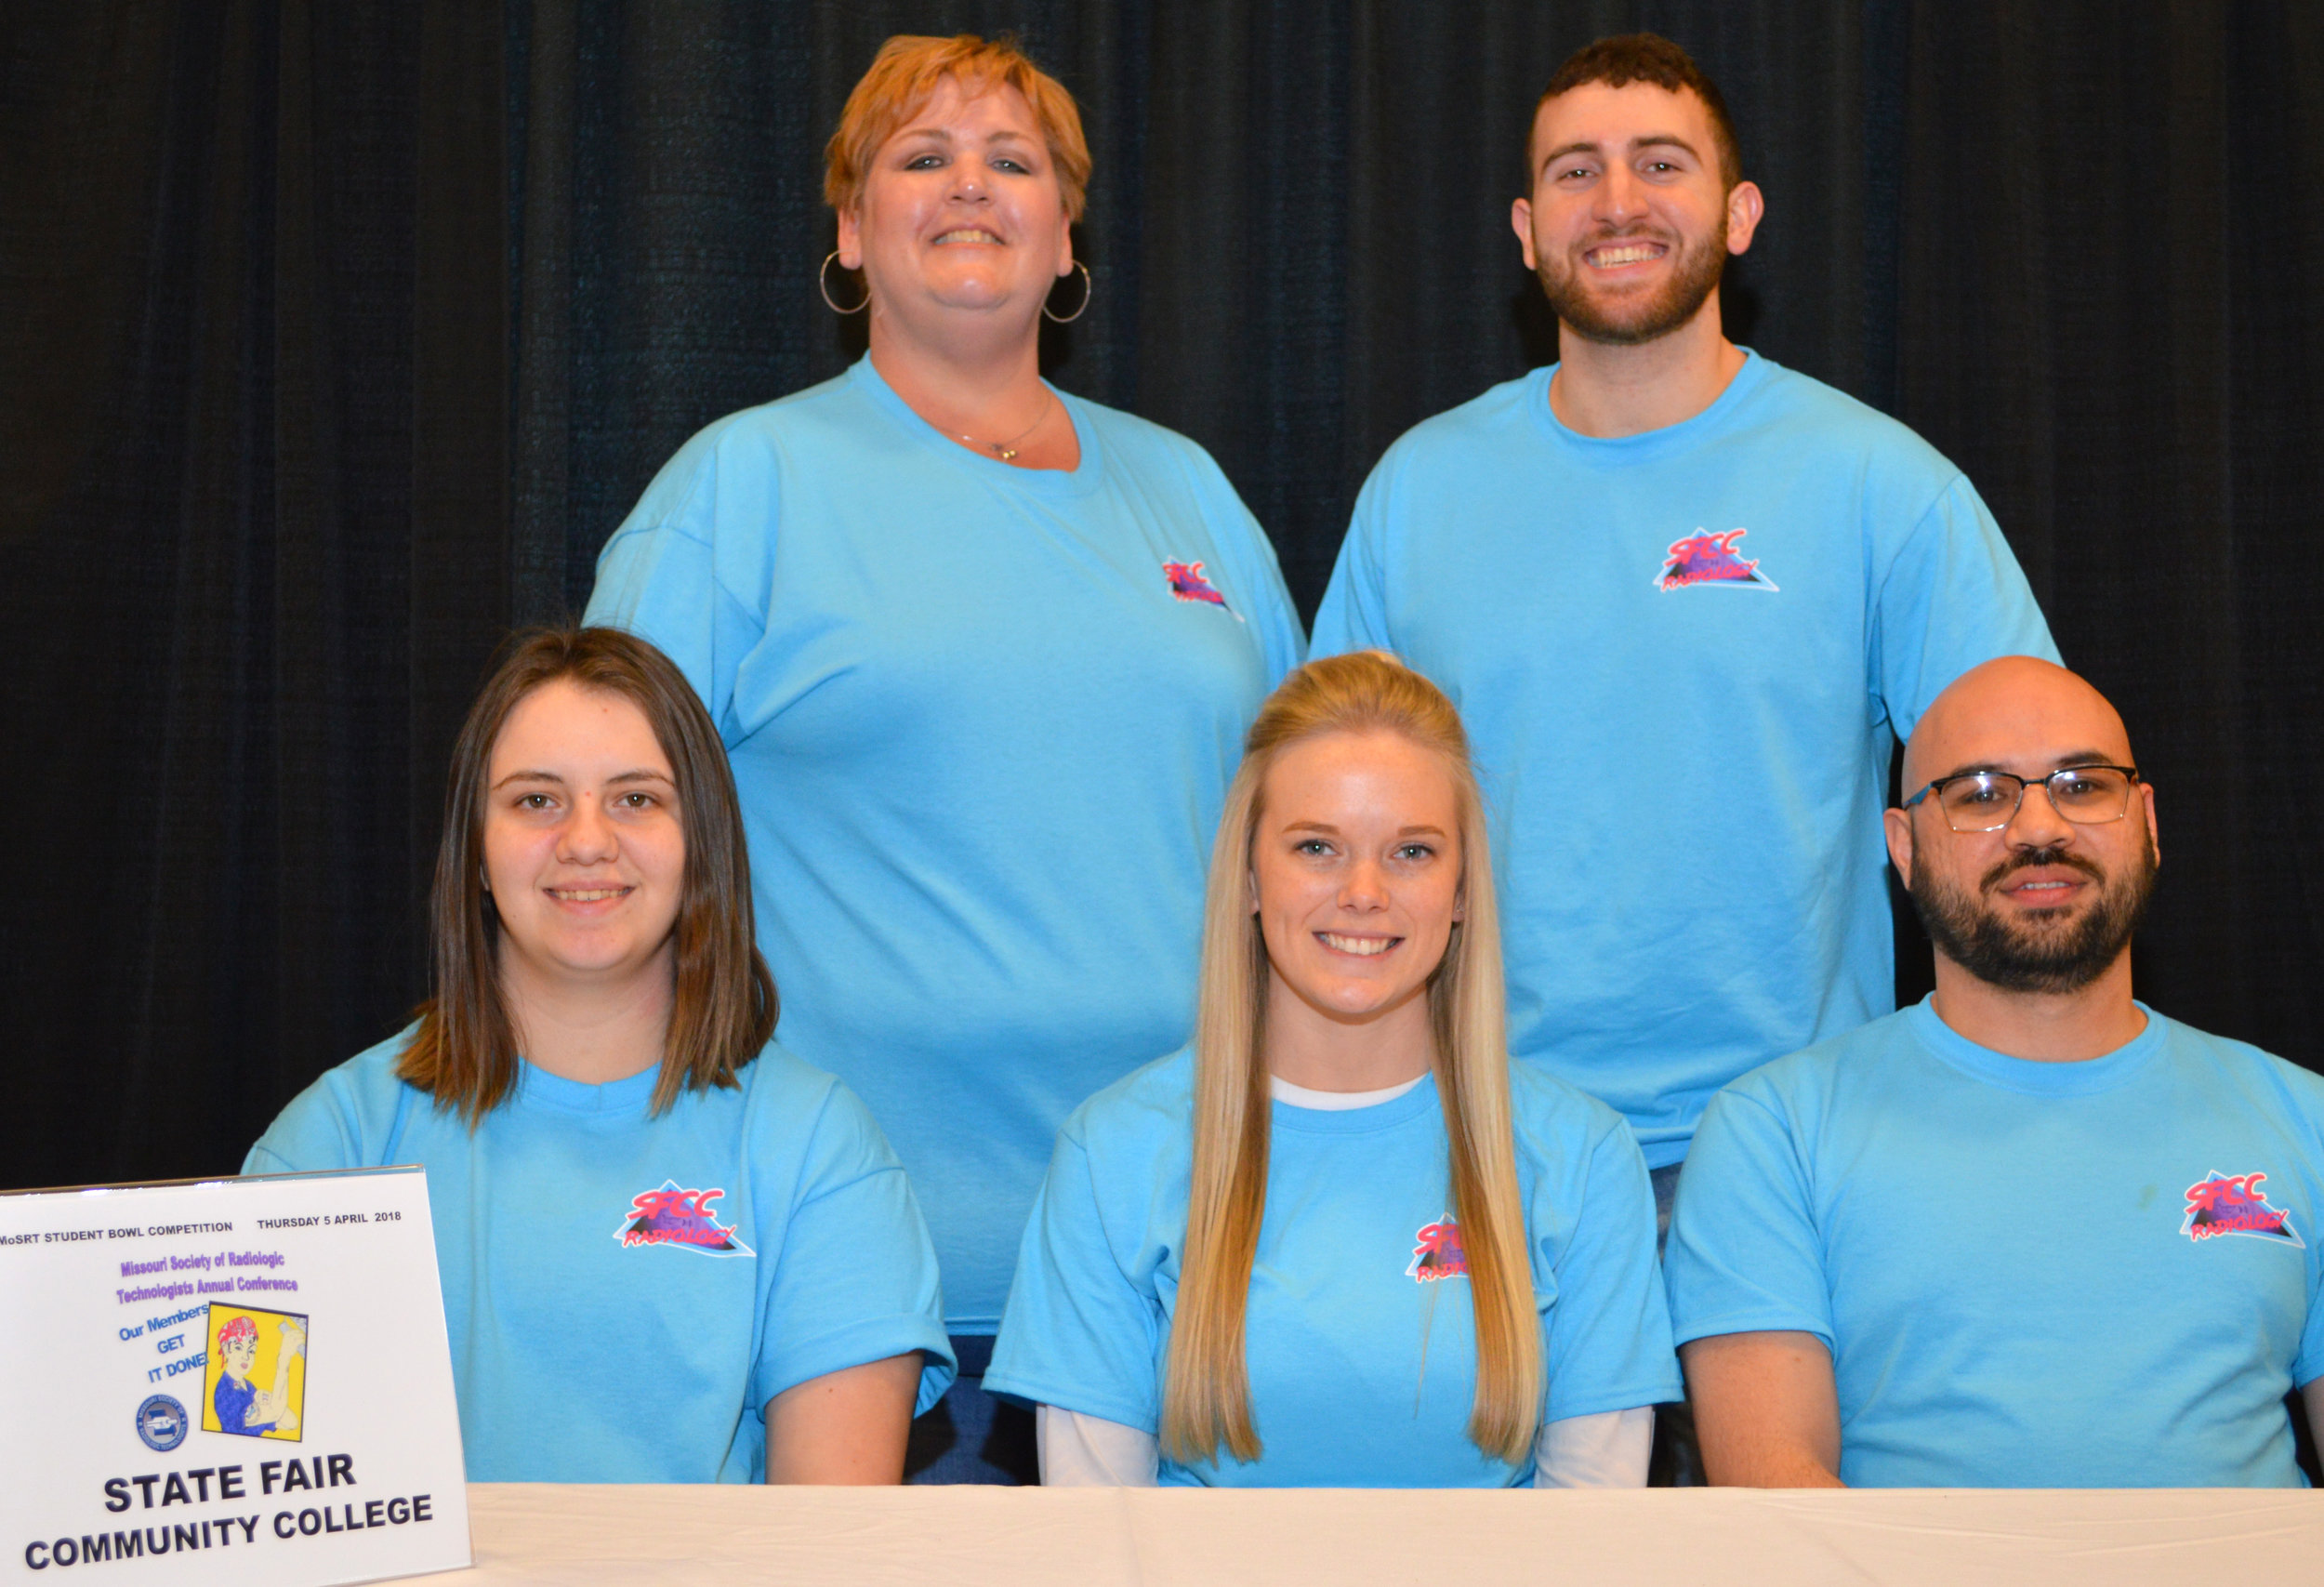 STATE_FAIR_Student_Bowl_4th Place_DSC_0350.JPG